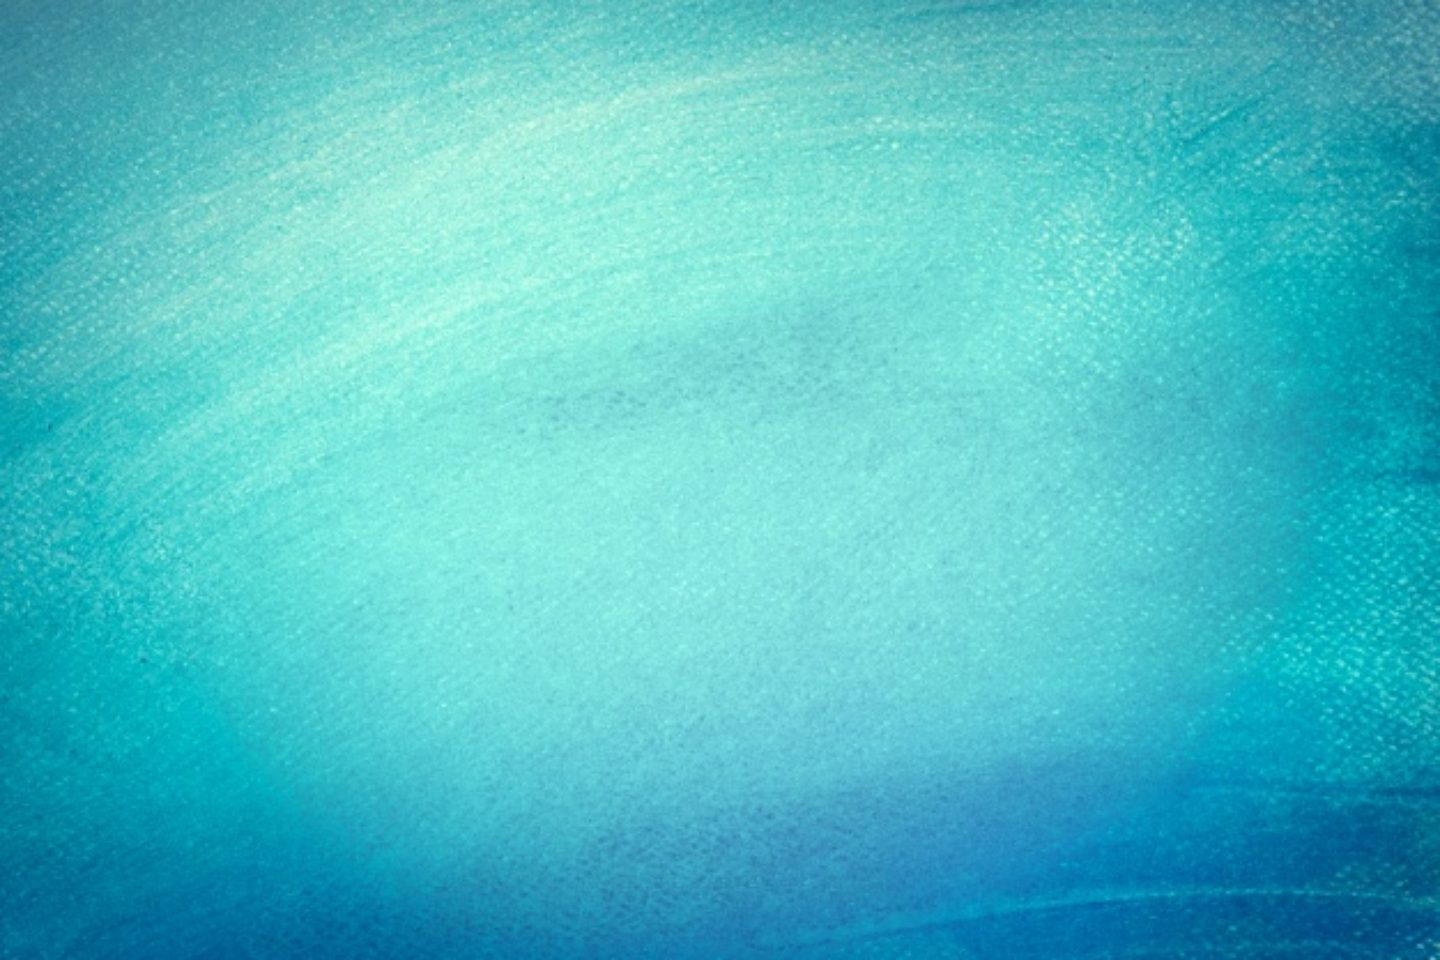 blue-background_1160-851